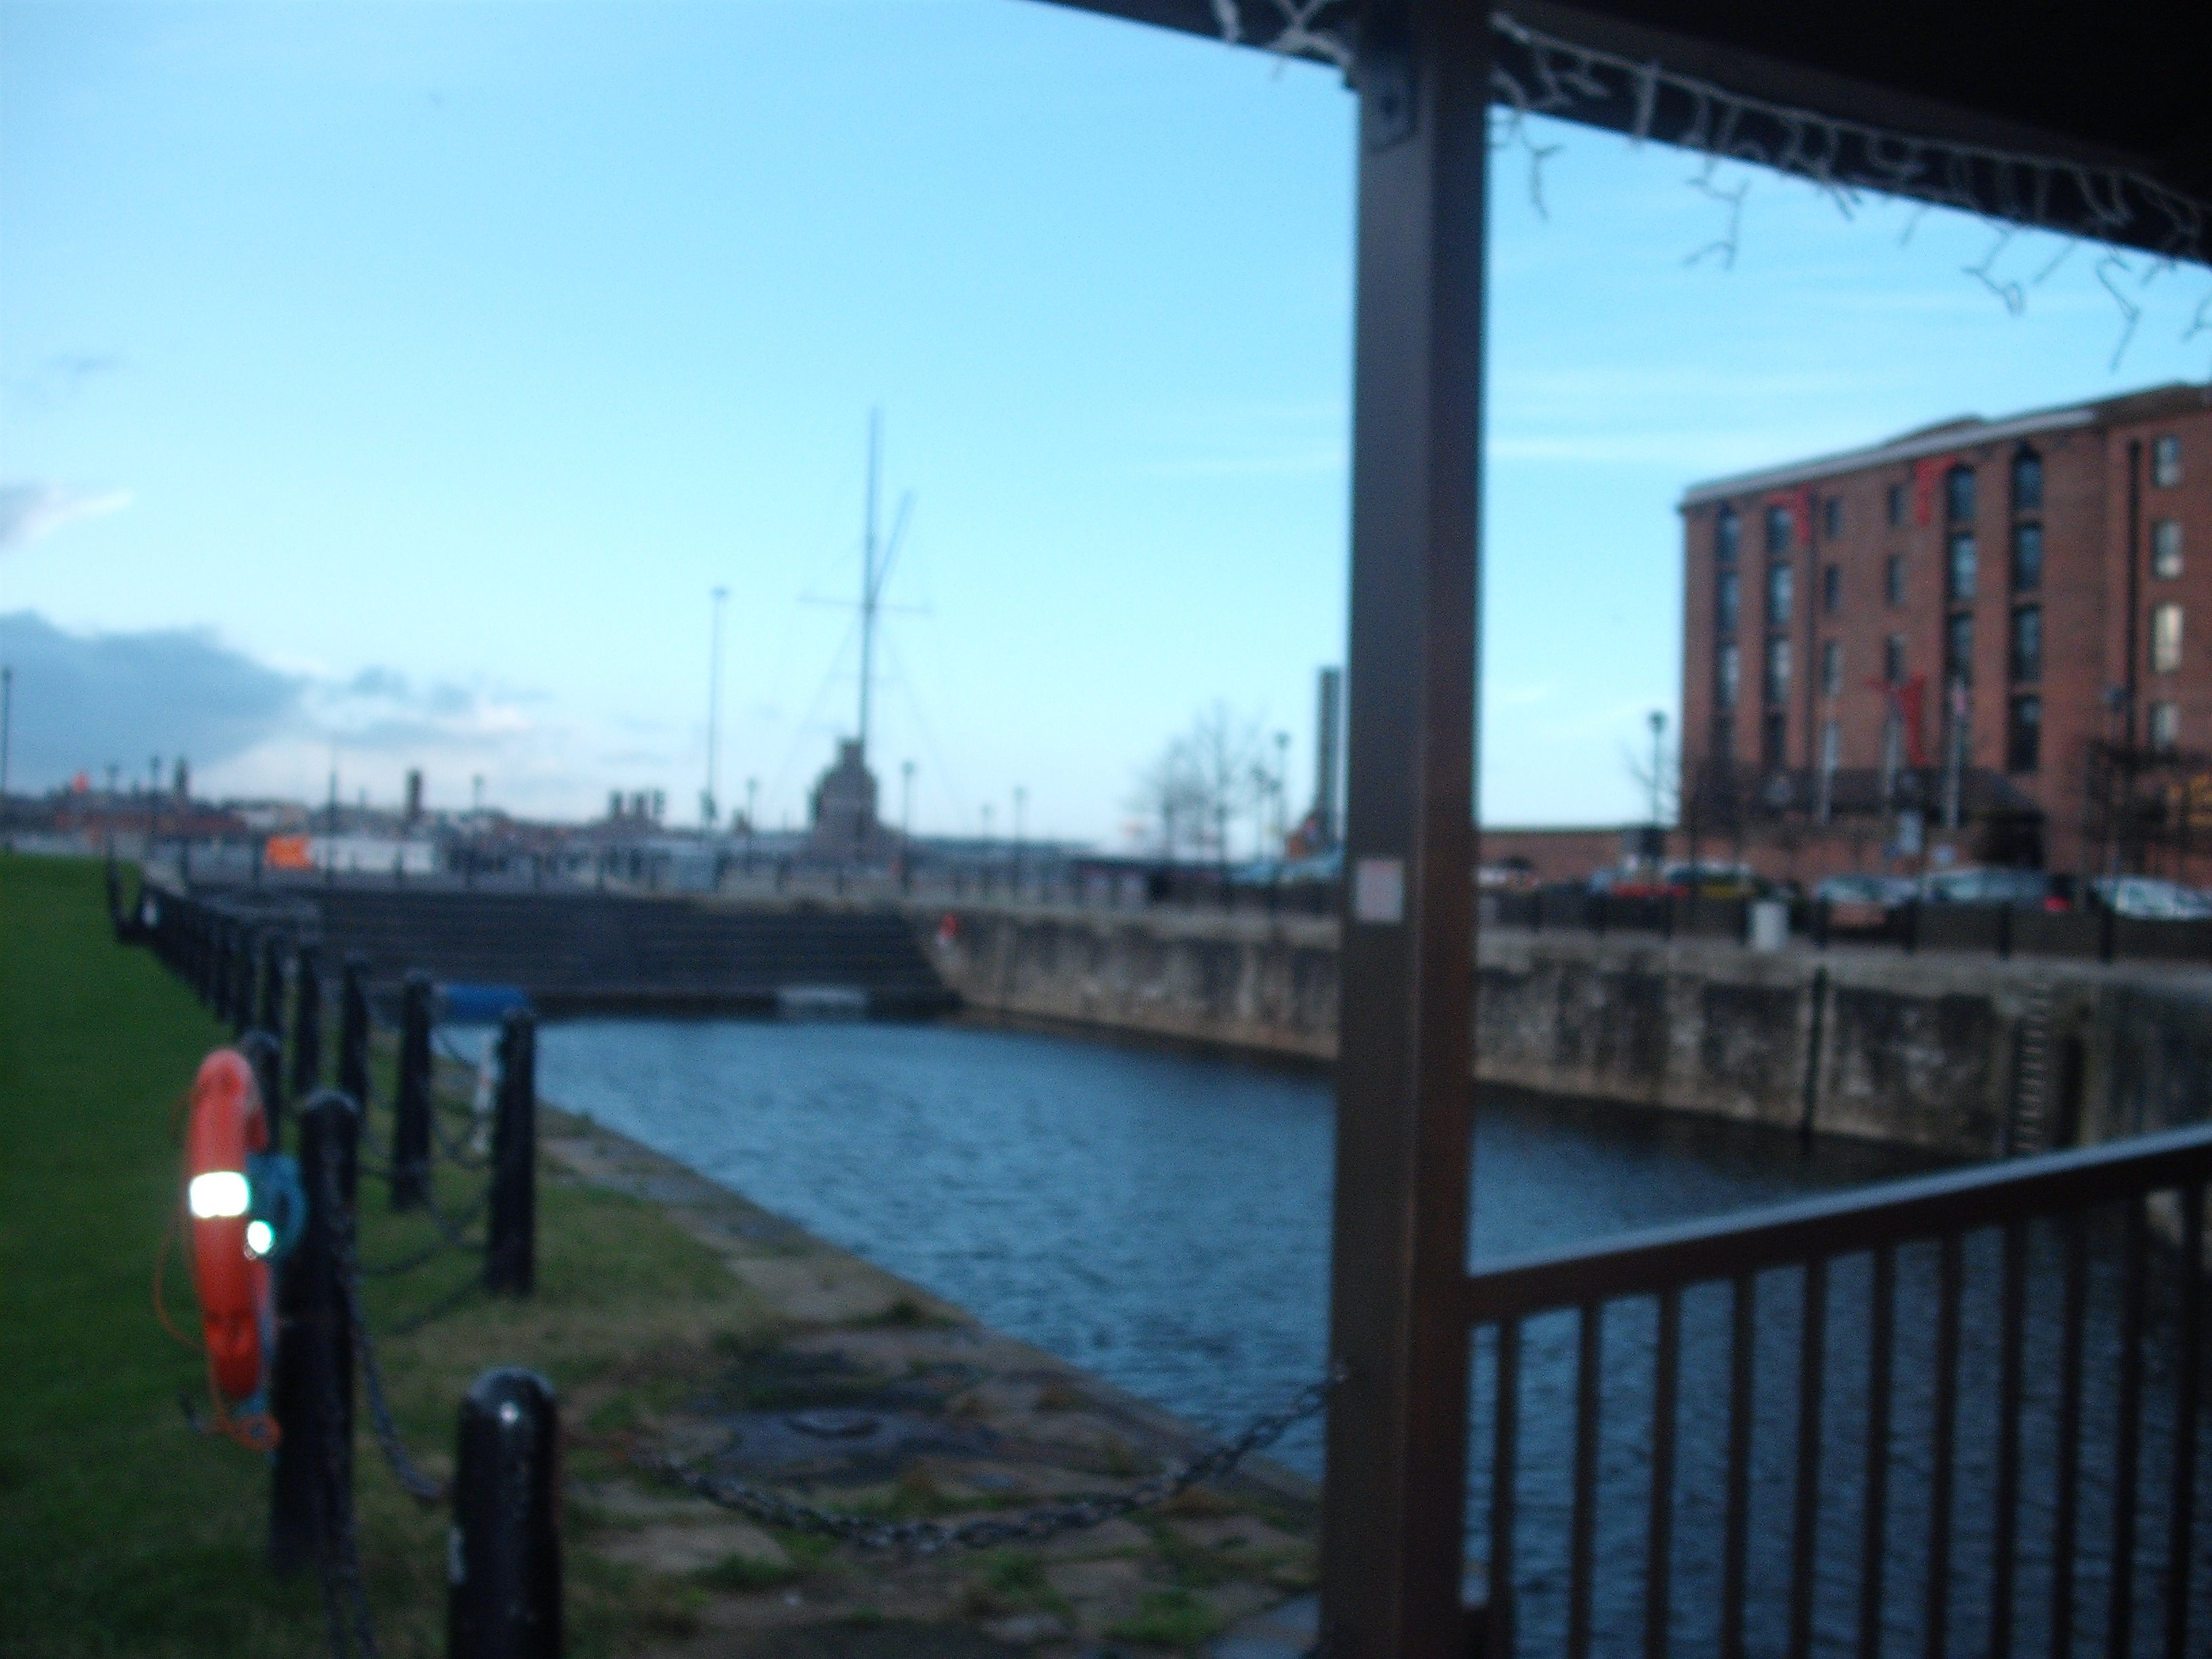 Muelle en Royal Albert Dock